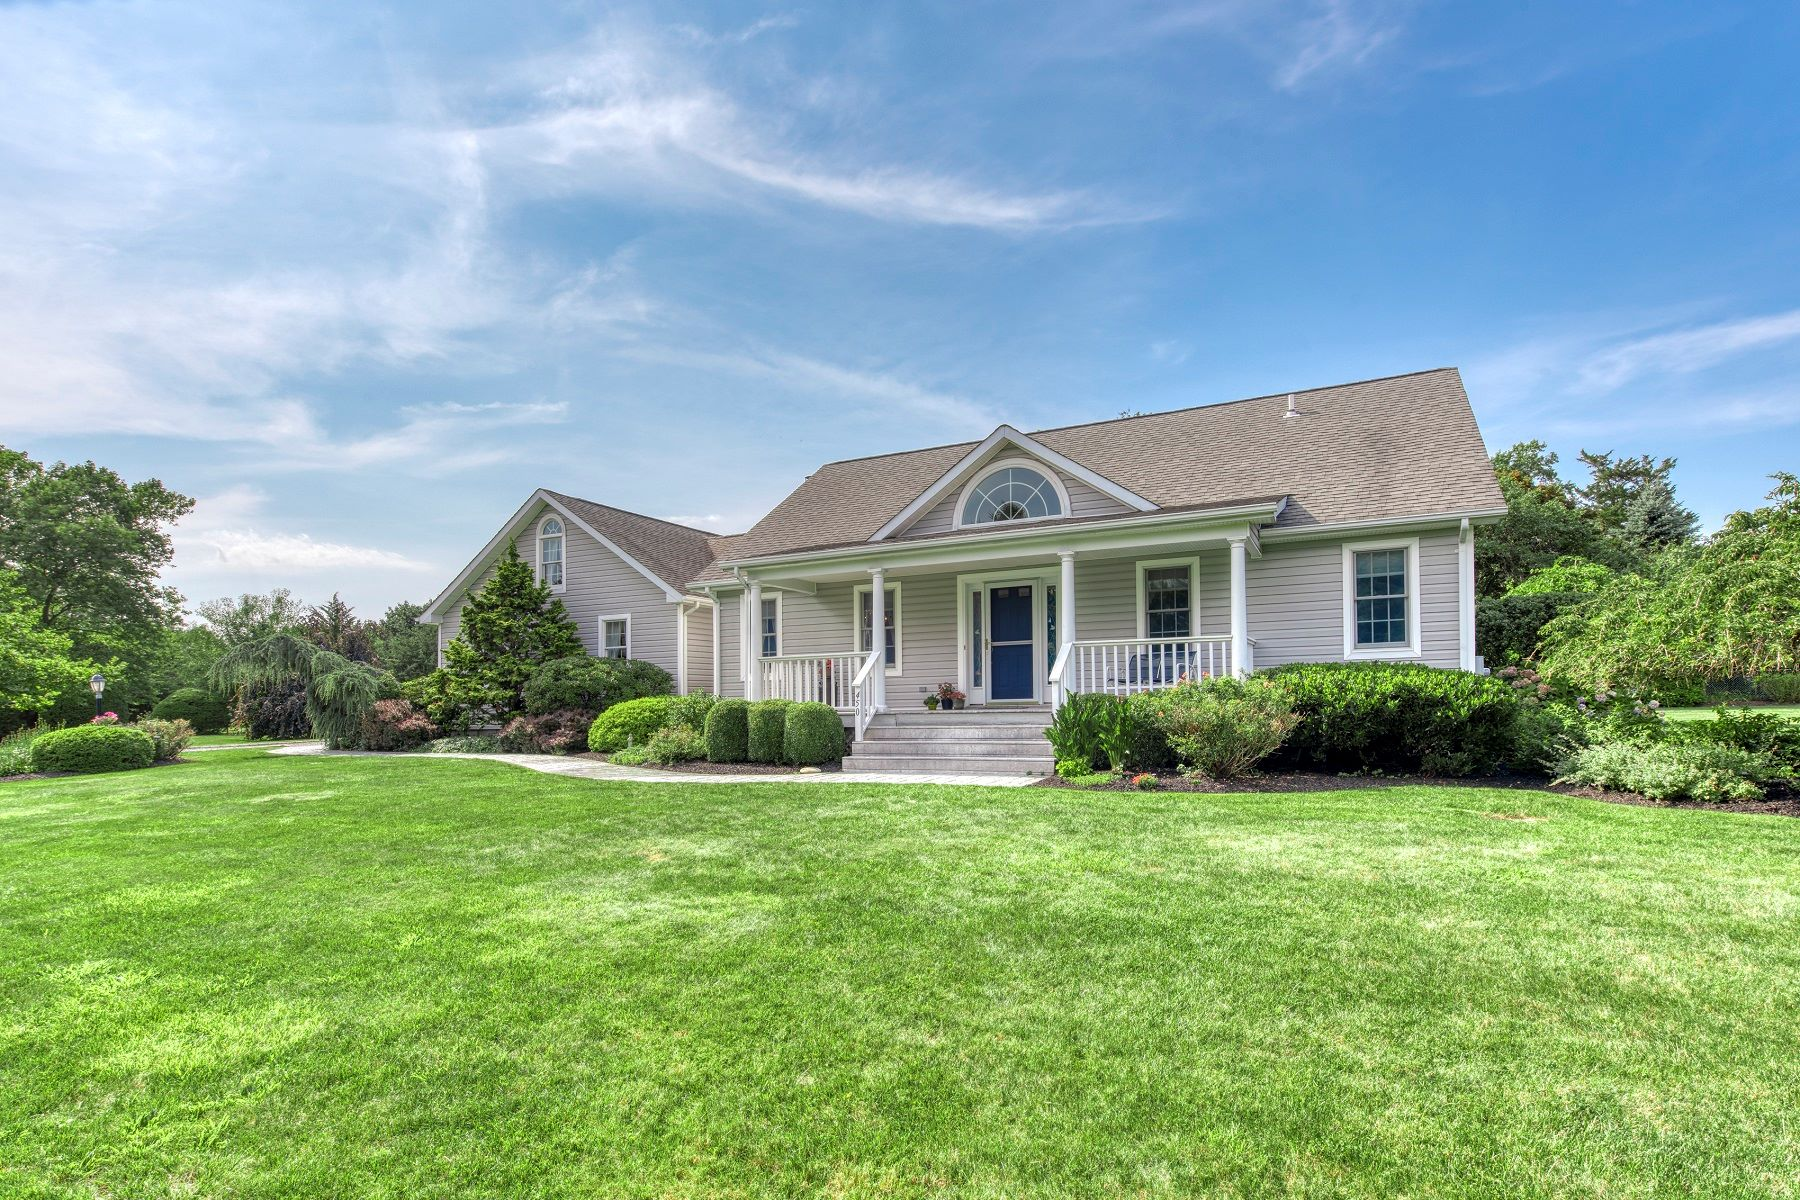 Single Family Homes for Sale at Cutchogue 450 Fairway Dr Cutchogue, New York 11935 United States